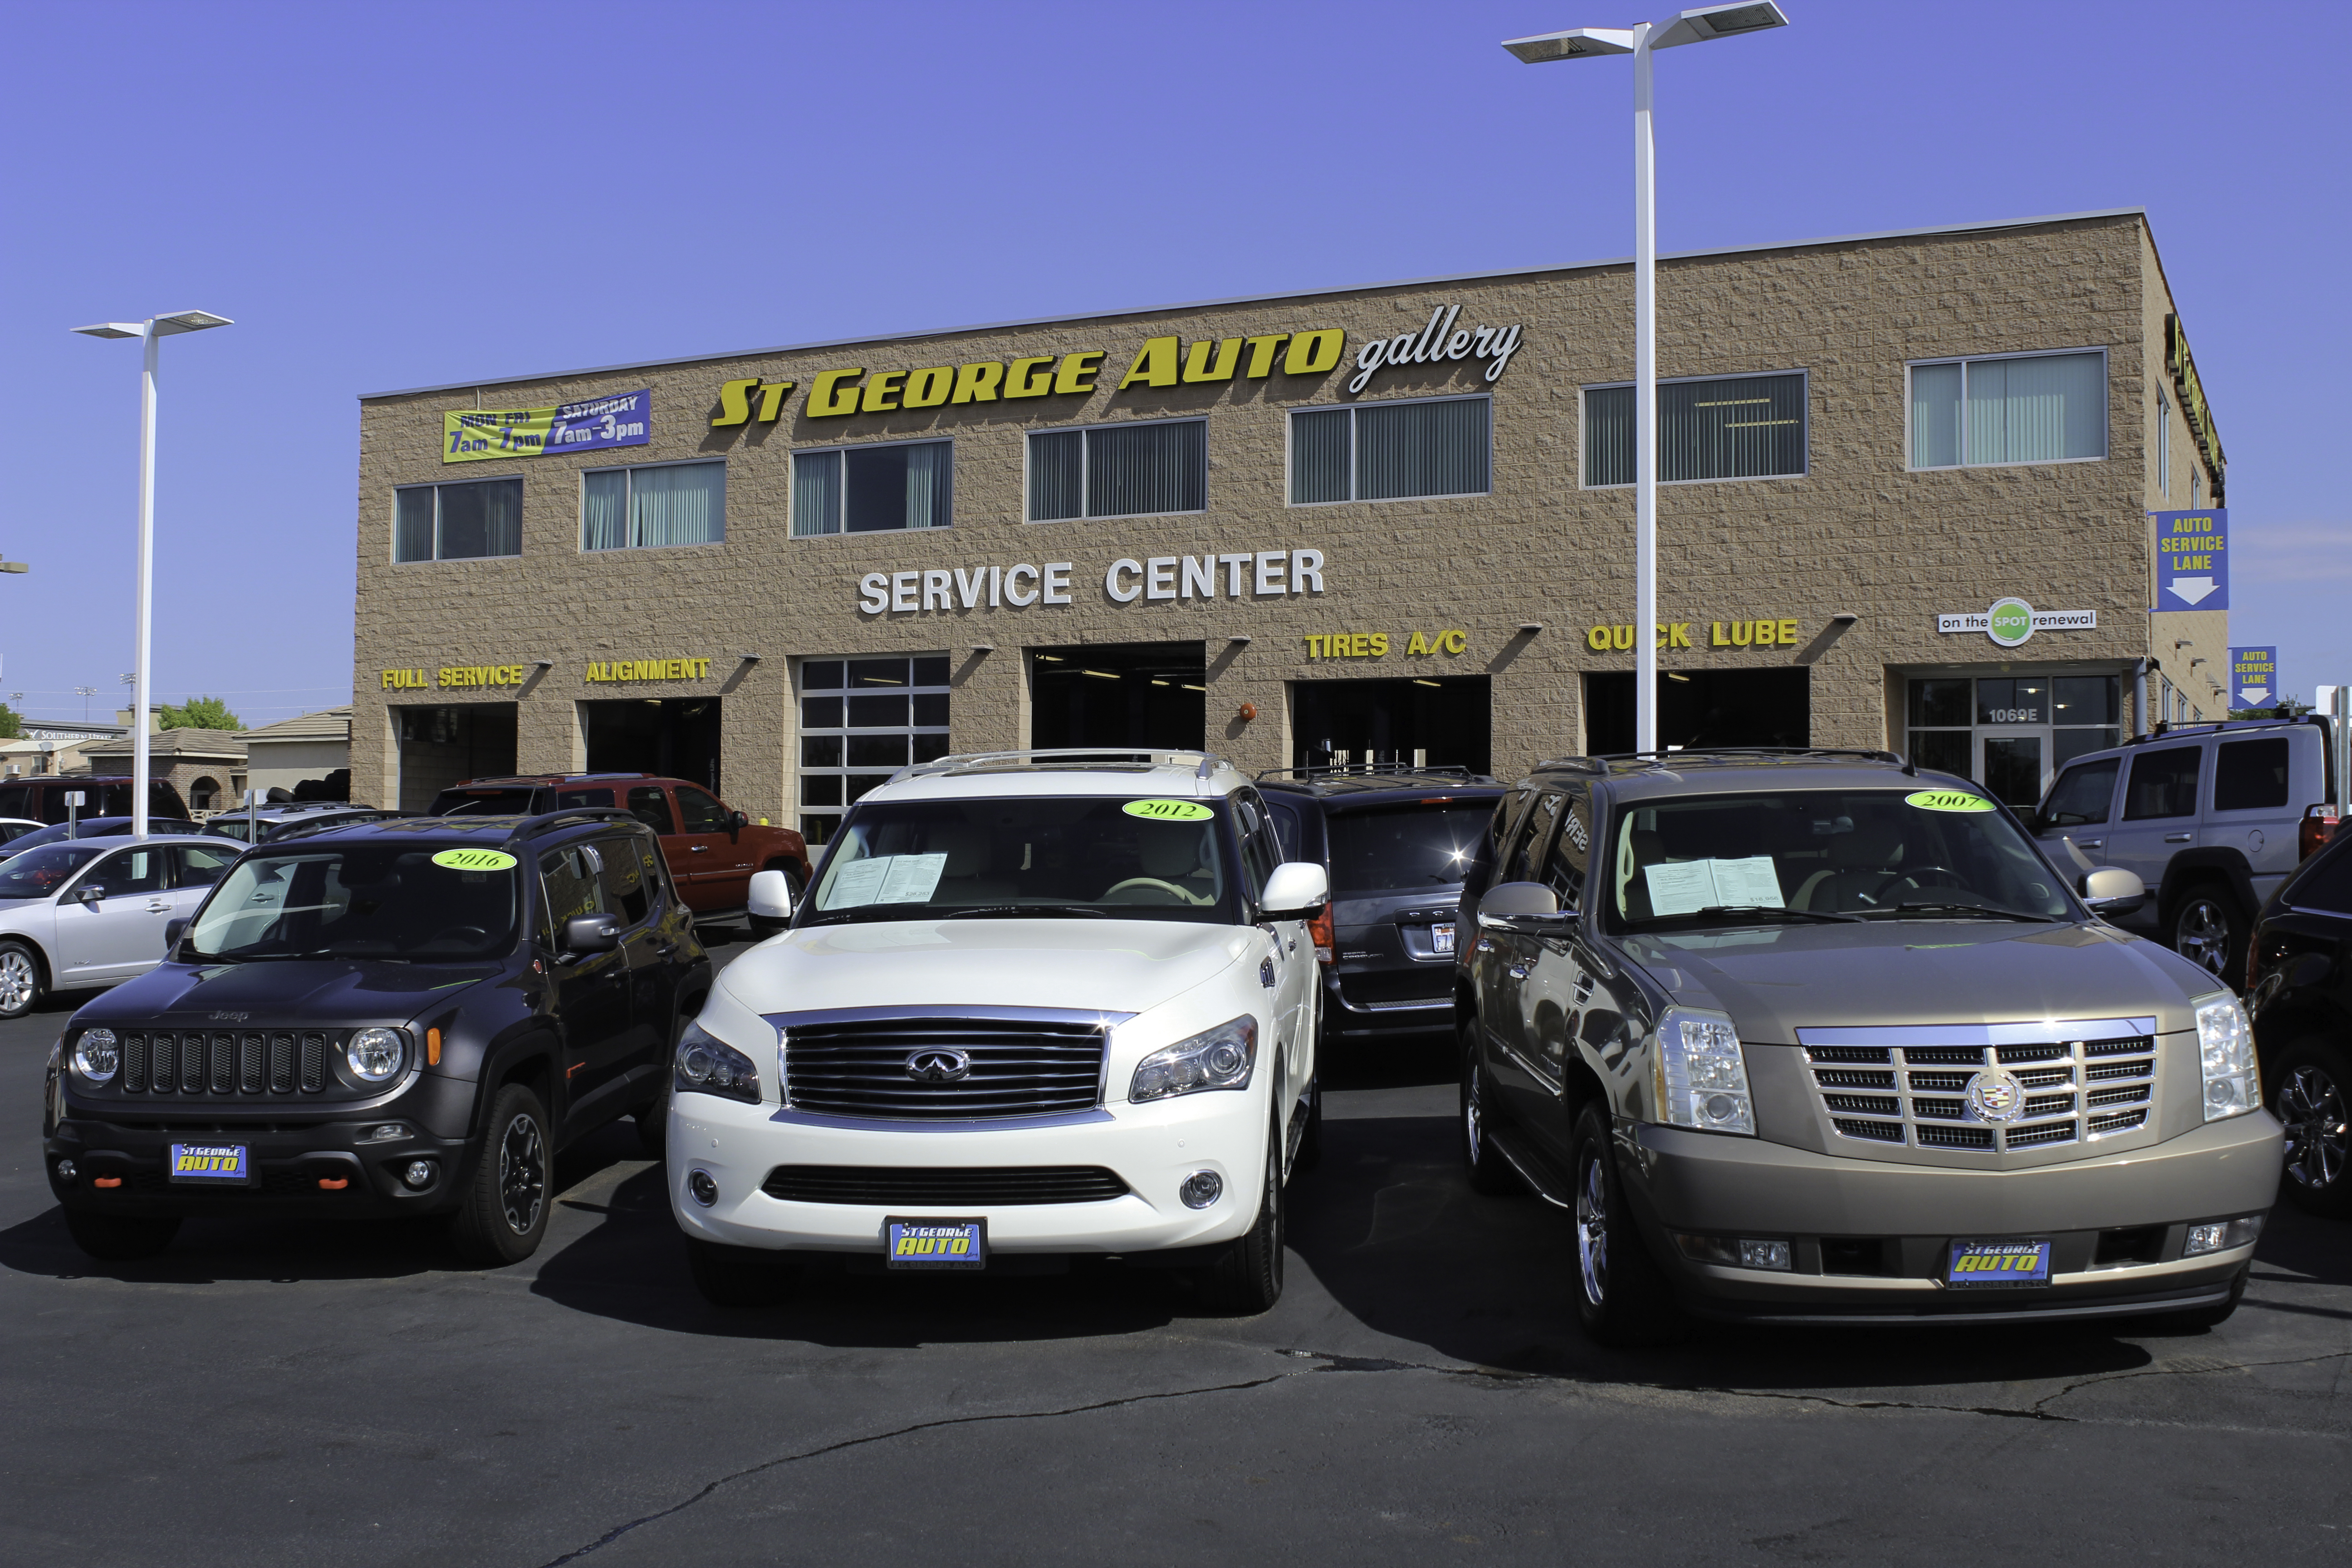 St George Auto >> St George Auto Gallery To Give Away 50 000 Jeep In Quest For The